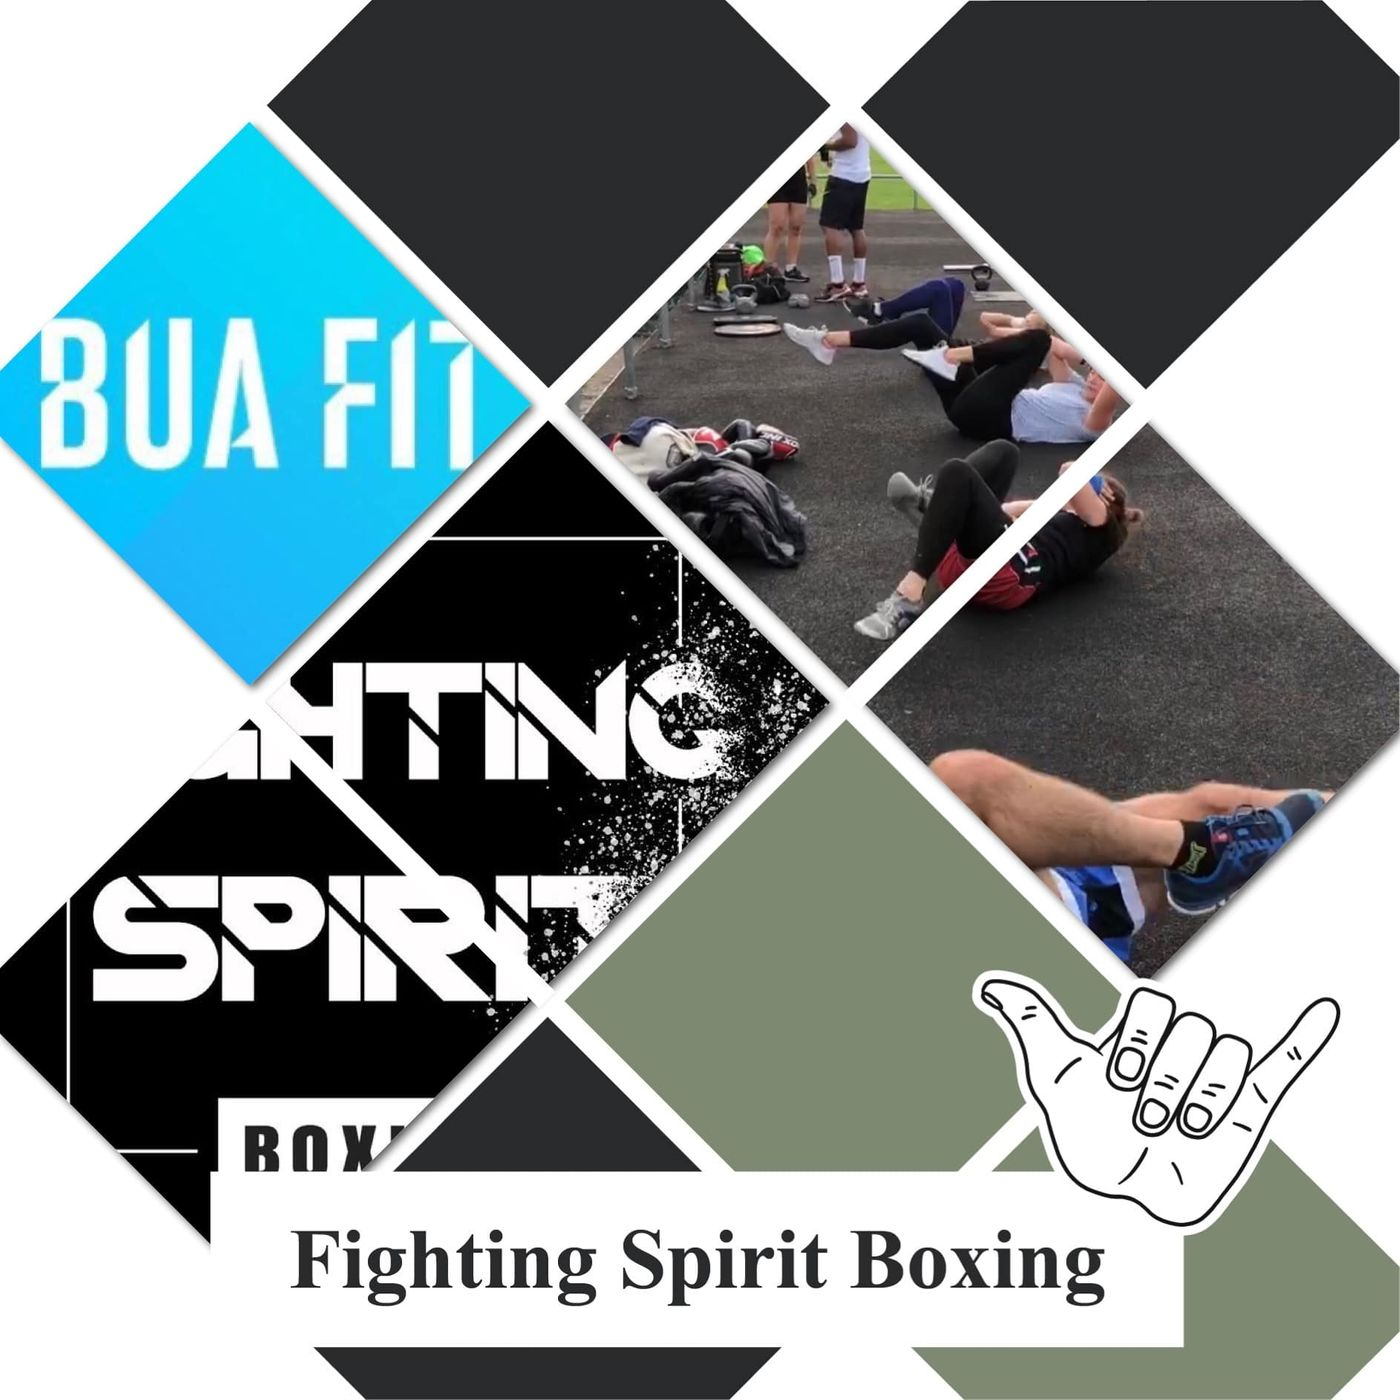 The best way to find out if you are going to like something is to try it first!!!!  Have a free trial Fighting Spirit Boxing session by entering this link below, I am sure you will  ❤️ it!!!!  https://bua.fit/refer/j8WxZCGnnR  Every Tuesday morning at 07:00 - 07:45